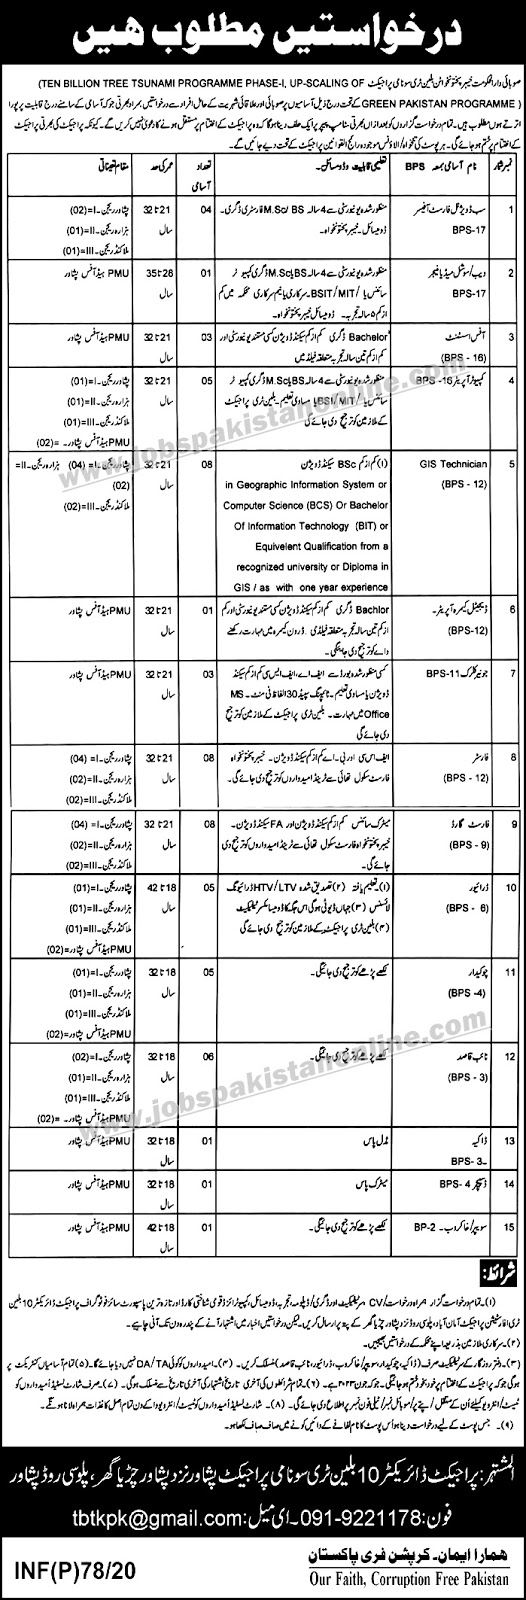 Urgent Jobs In Peshawar In Ministry Of Climate Change Khyber Pakhtunkhwa | Apply Now